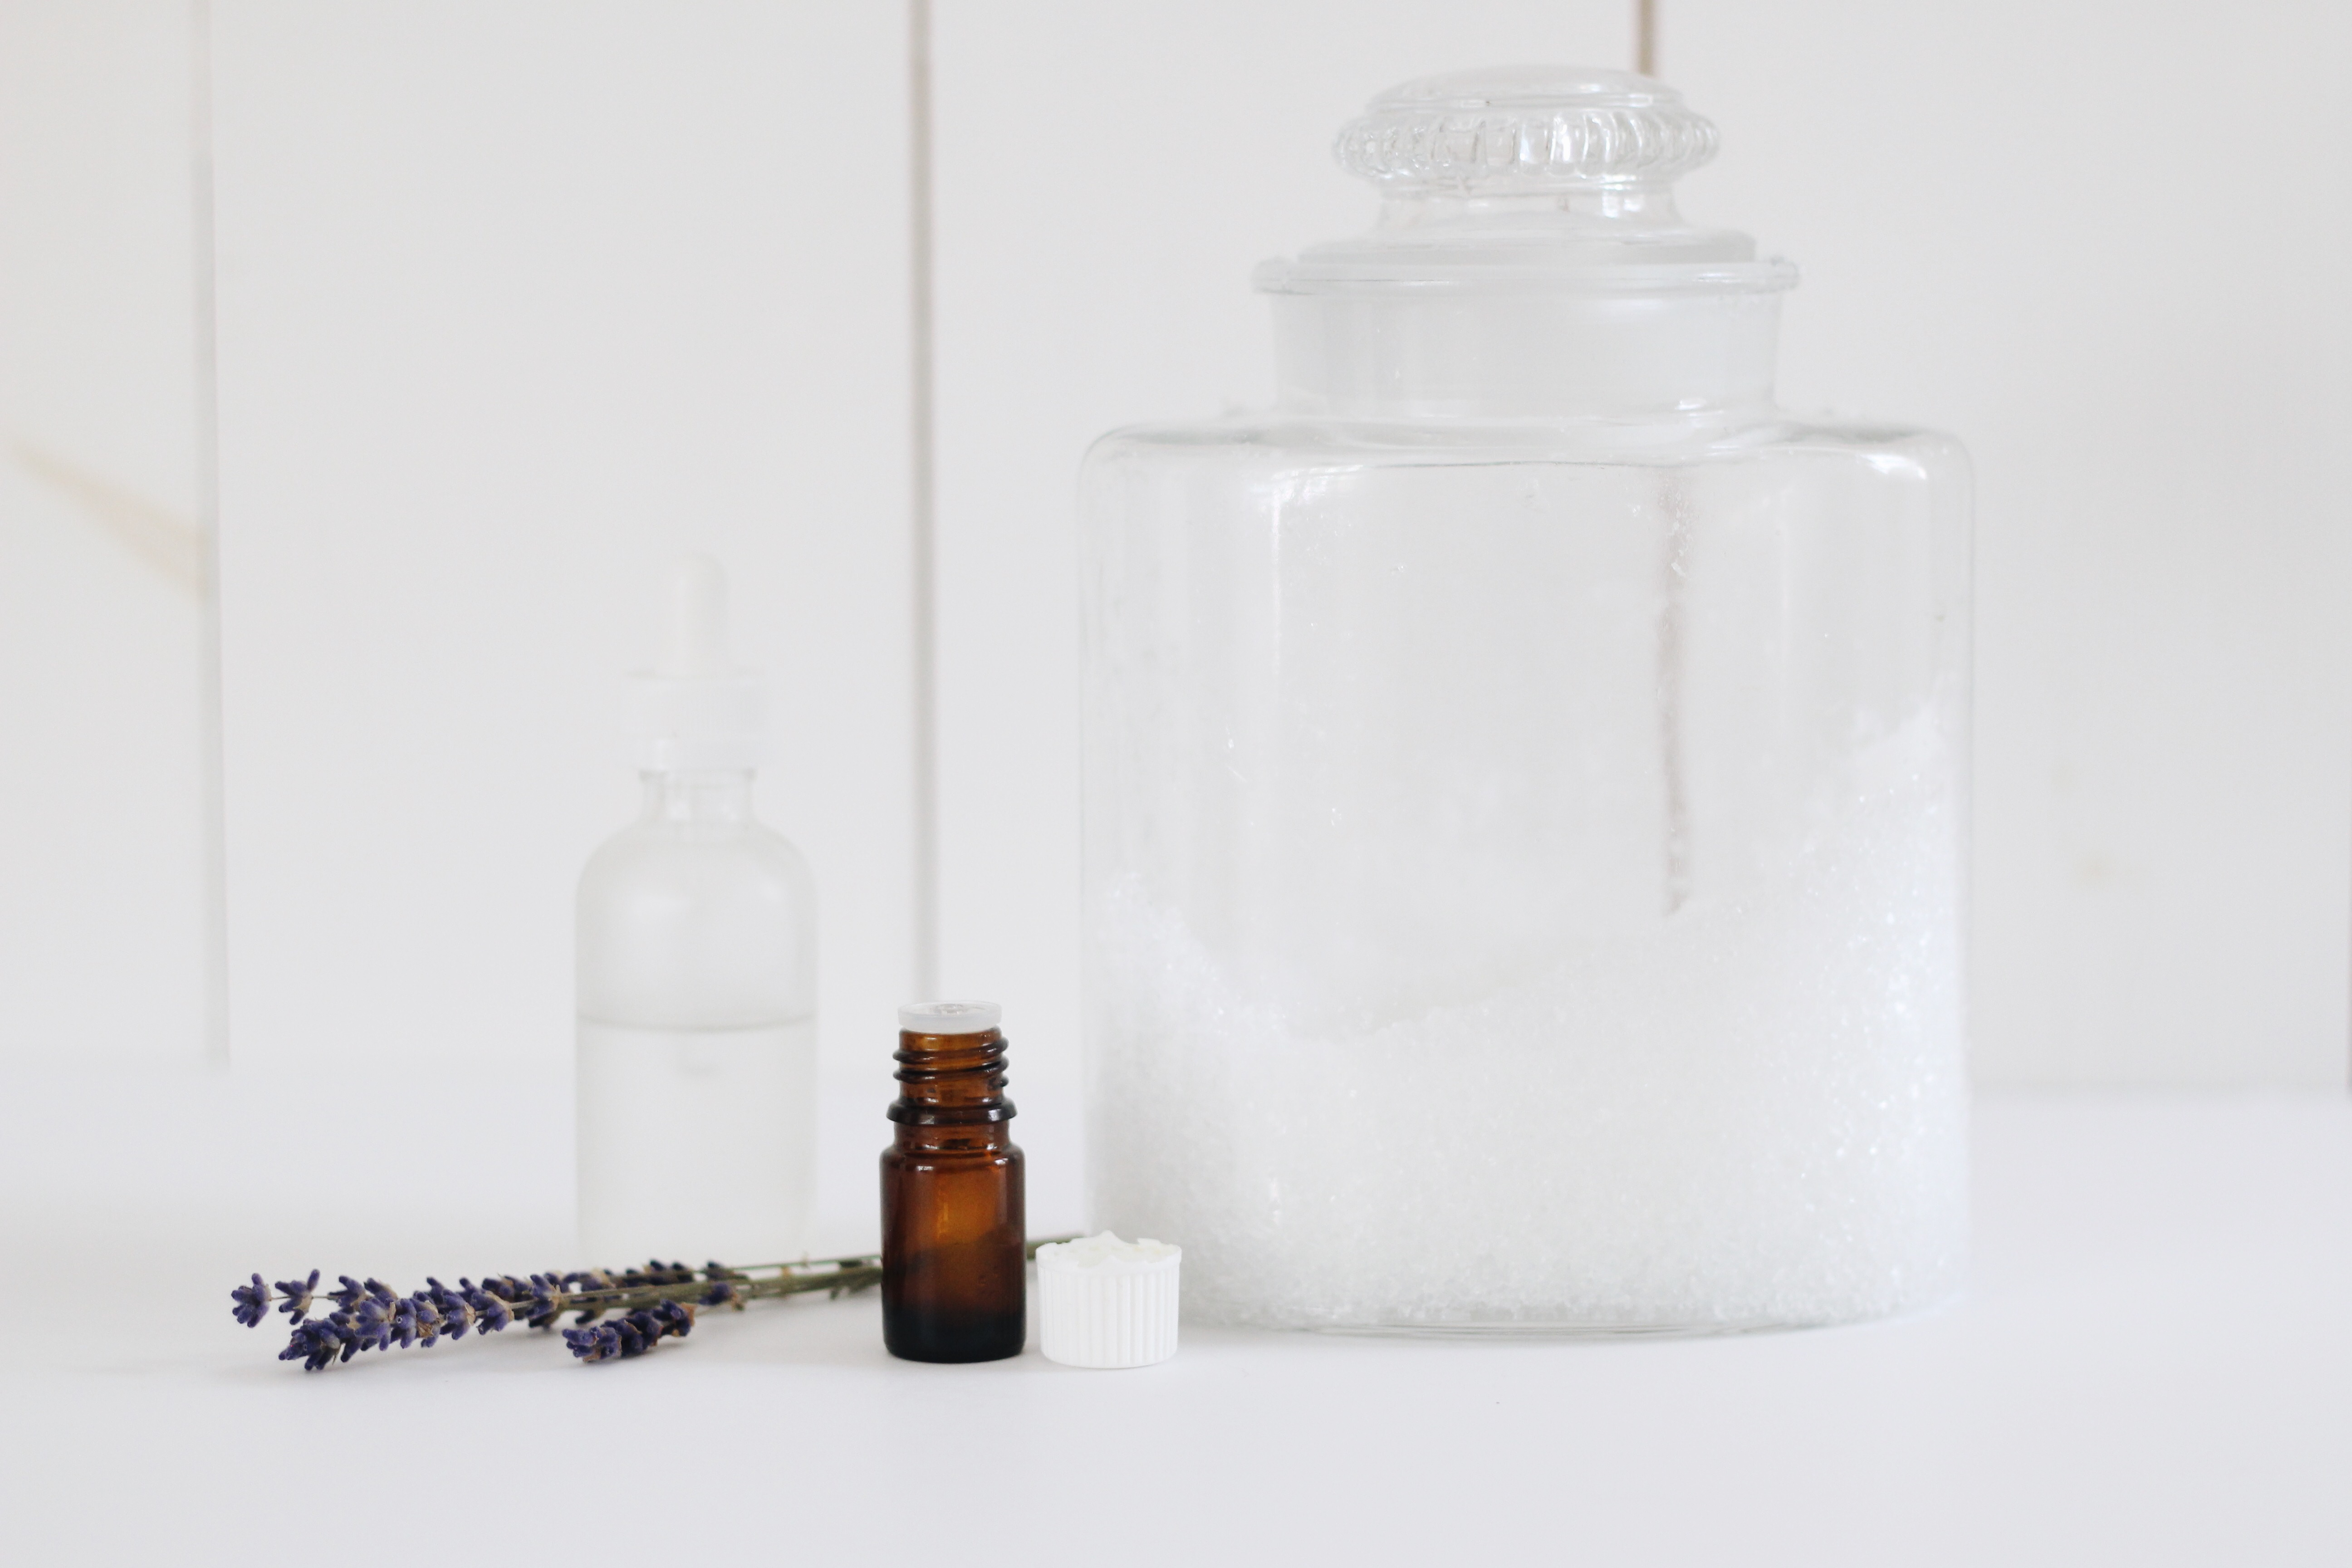 epsom salts in a glass jar, with an amber bottle of essential oil